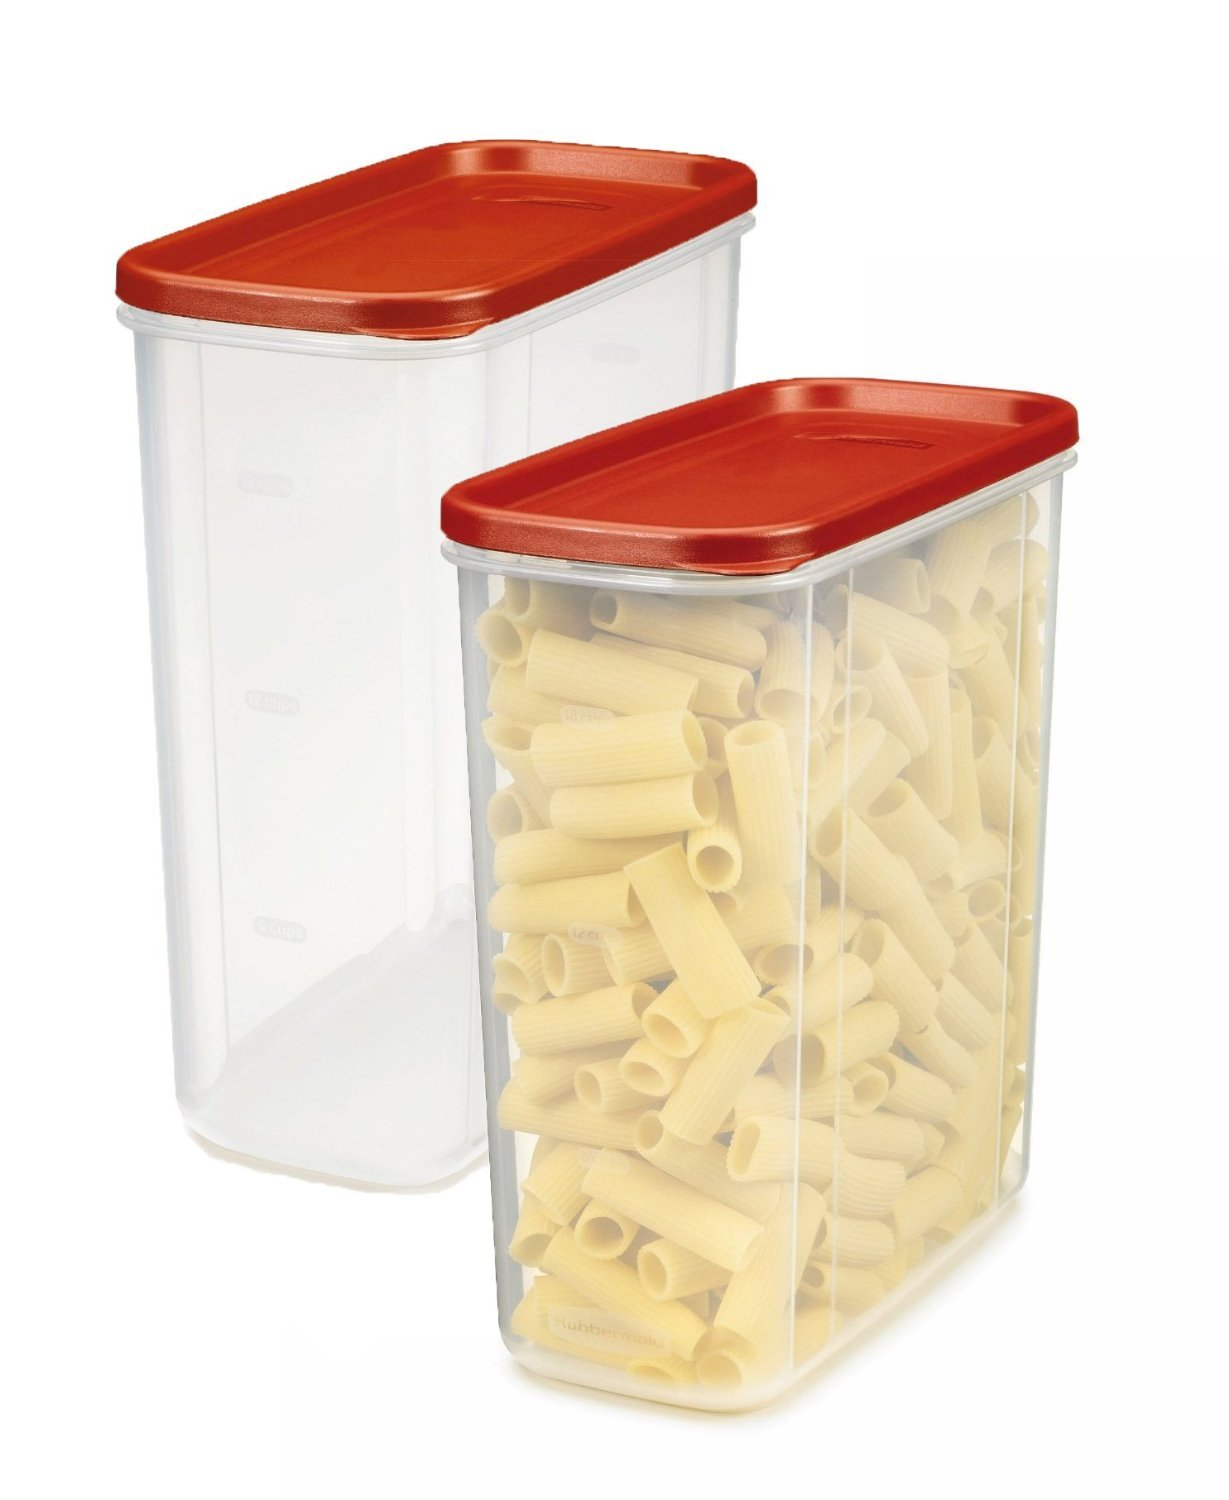 rubbermaid 21 cup dry clear food storage container set of 2 ebay. Black Bedroom Furniture Sets. Home Design Ideas